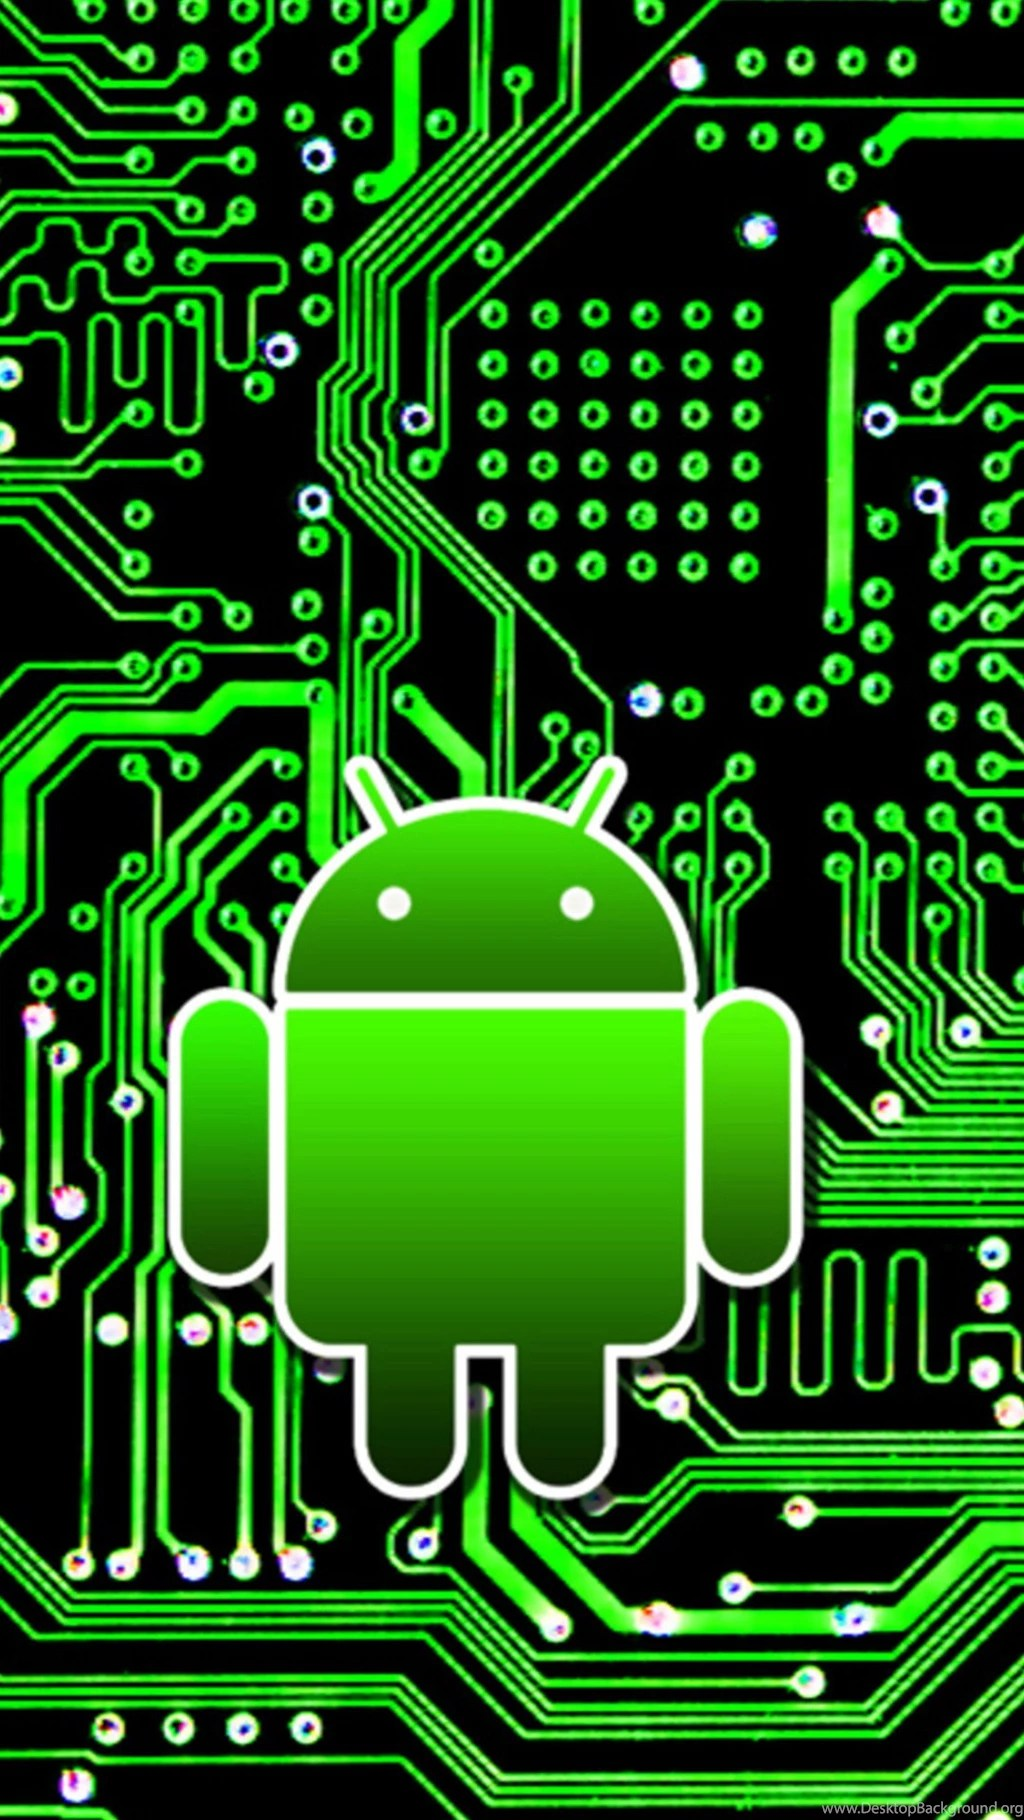 3d Call Of Duty 2 Wallpaper Android Circuit Board 01 Galaxy S5 Wallpapers Hd Jpg